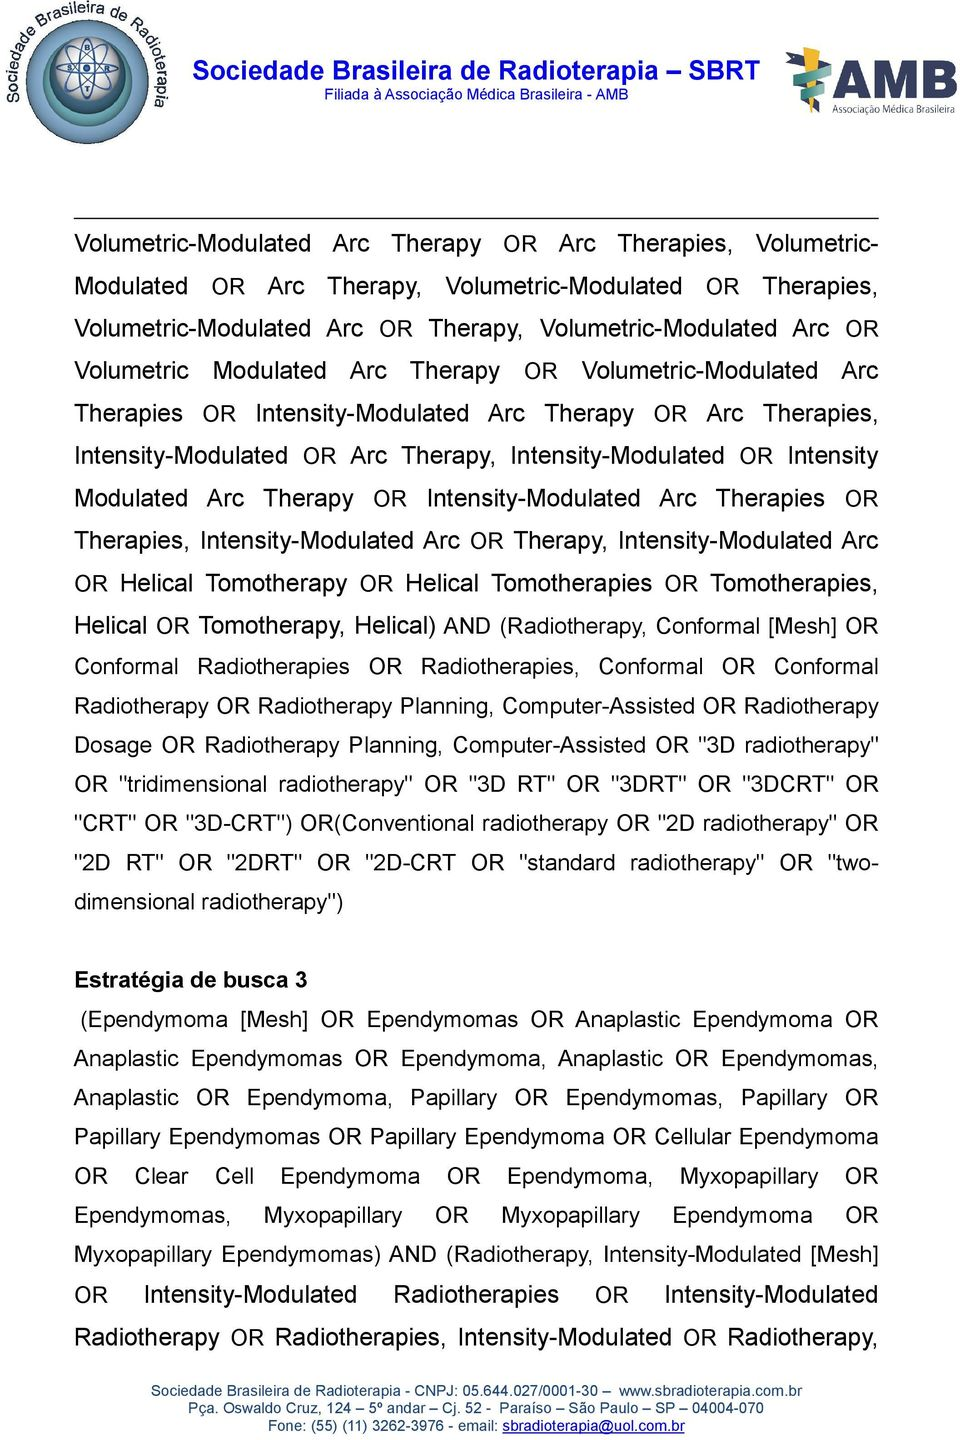 Therapy OR Intensity-Modulated Arc Therapies OR Therapies, Intensity-Modulated Arc OR Therapy, Intensity-Modulated Arc OR Helical Tomotherapy OR Helical Tomotherapies OR Tomotherapies, Helical OR